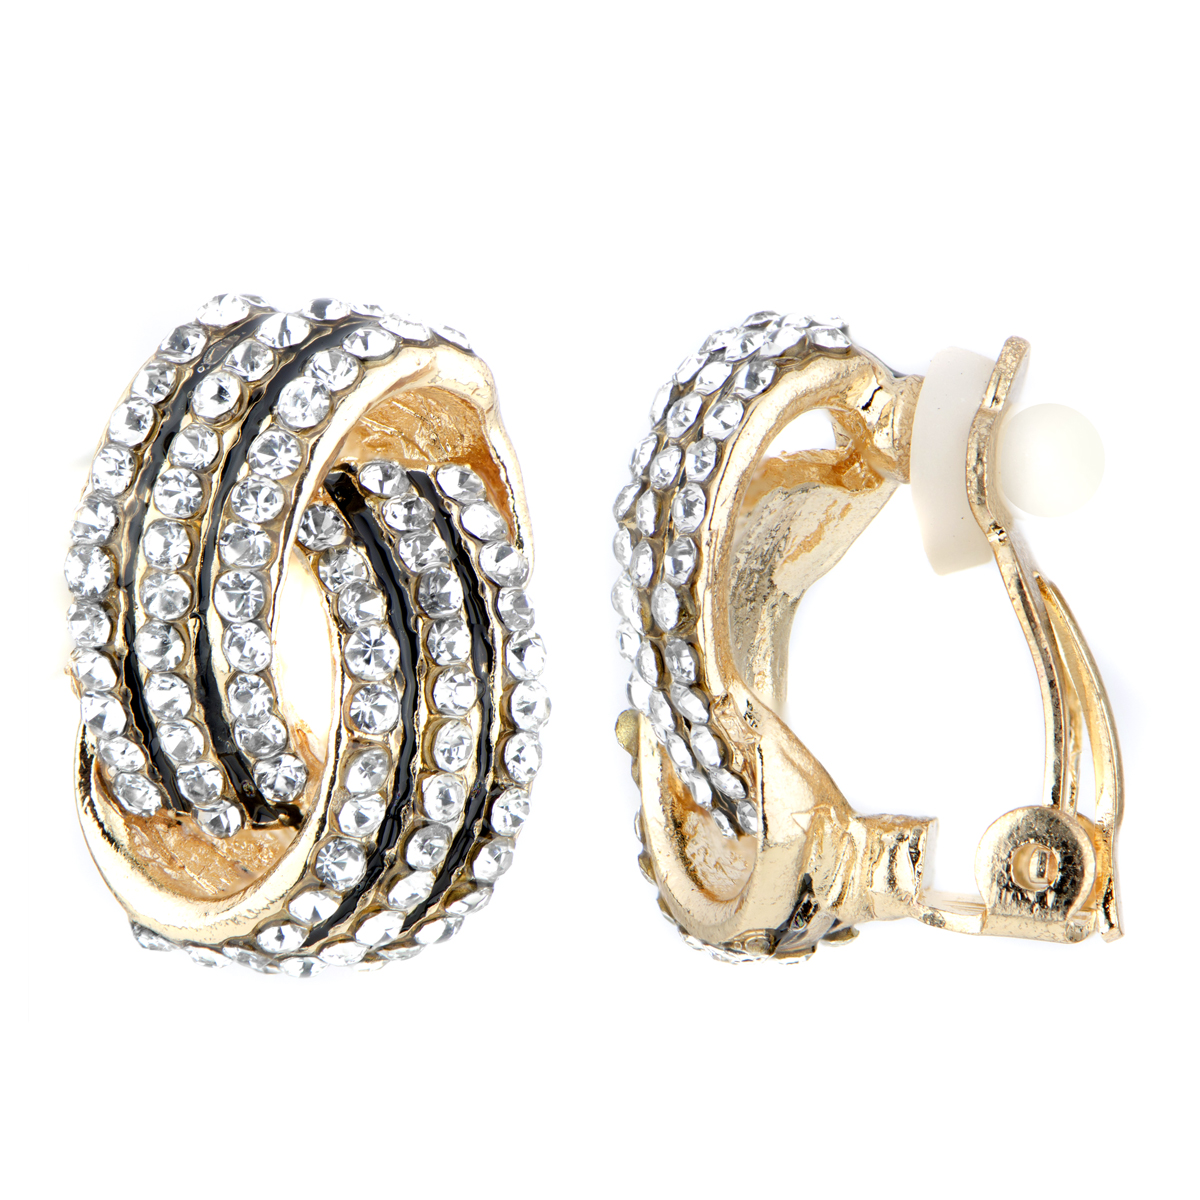 If your ears are sensitive or simply don't have them pierced, clip on earrings are a perfect alternative that allows you to show off your looks and keep comfortable while doing so. It is a myth that pearl clip-on earrings are limited in styles.